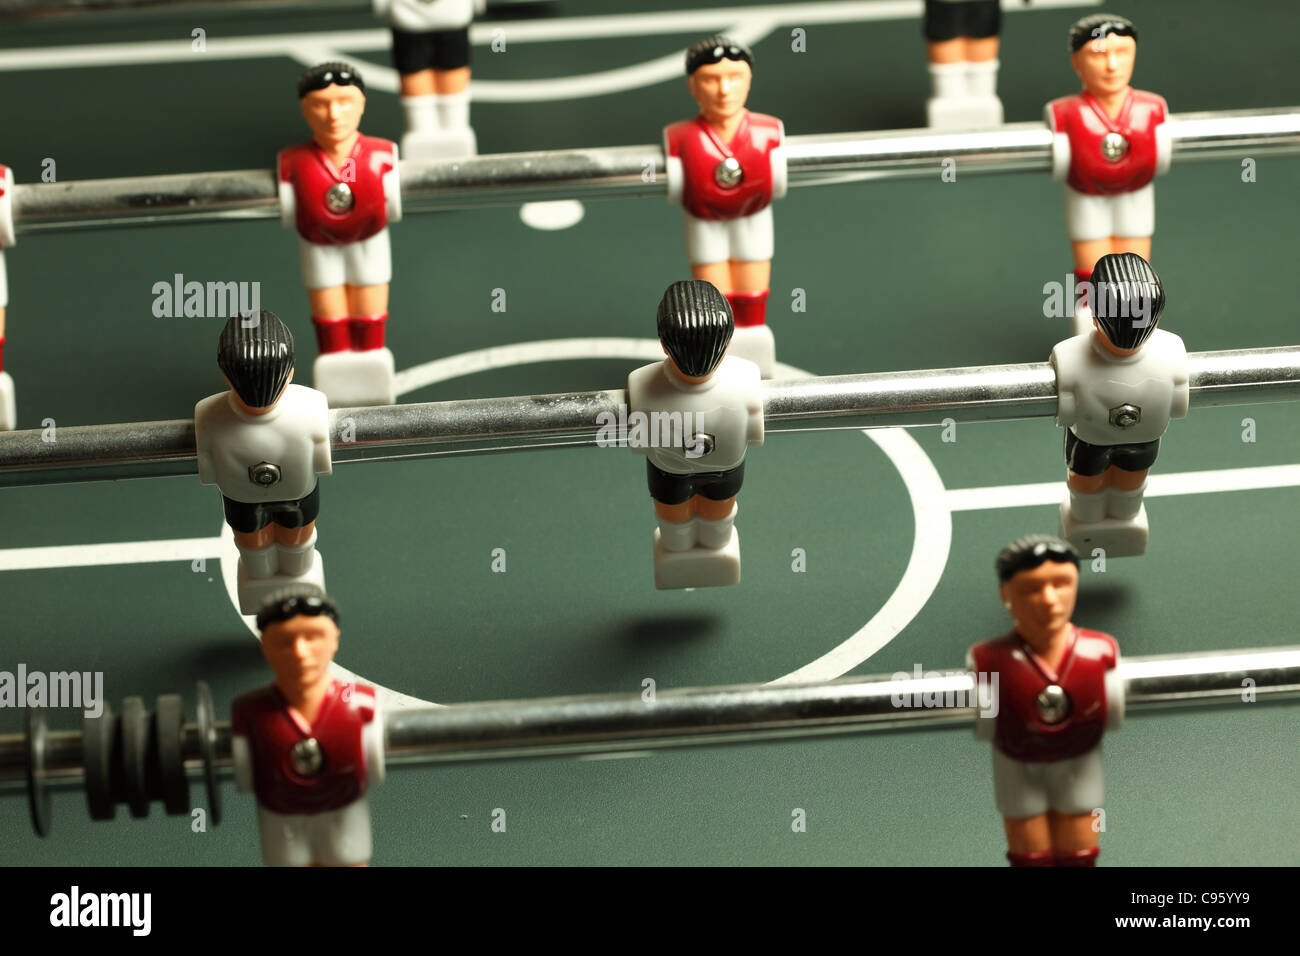 Table football game, Soccer table with red and blue players - Stock Image